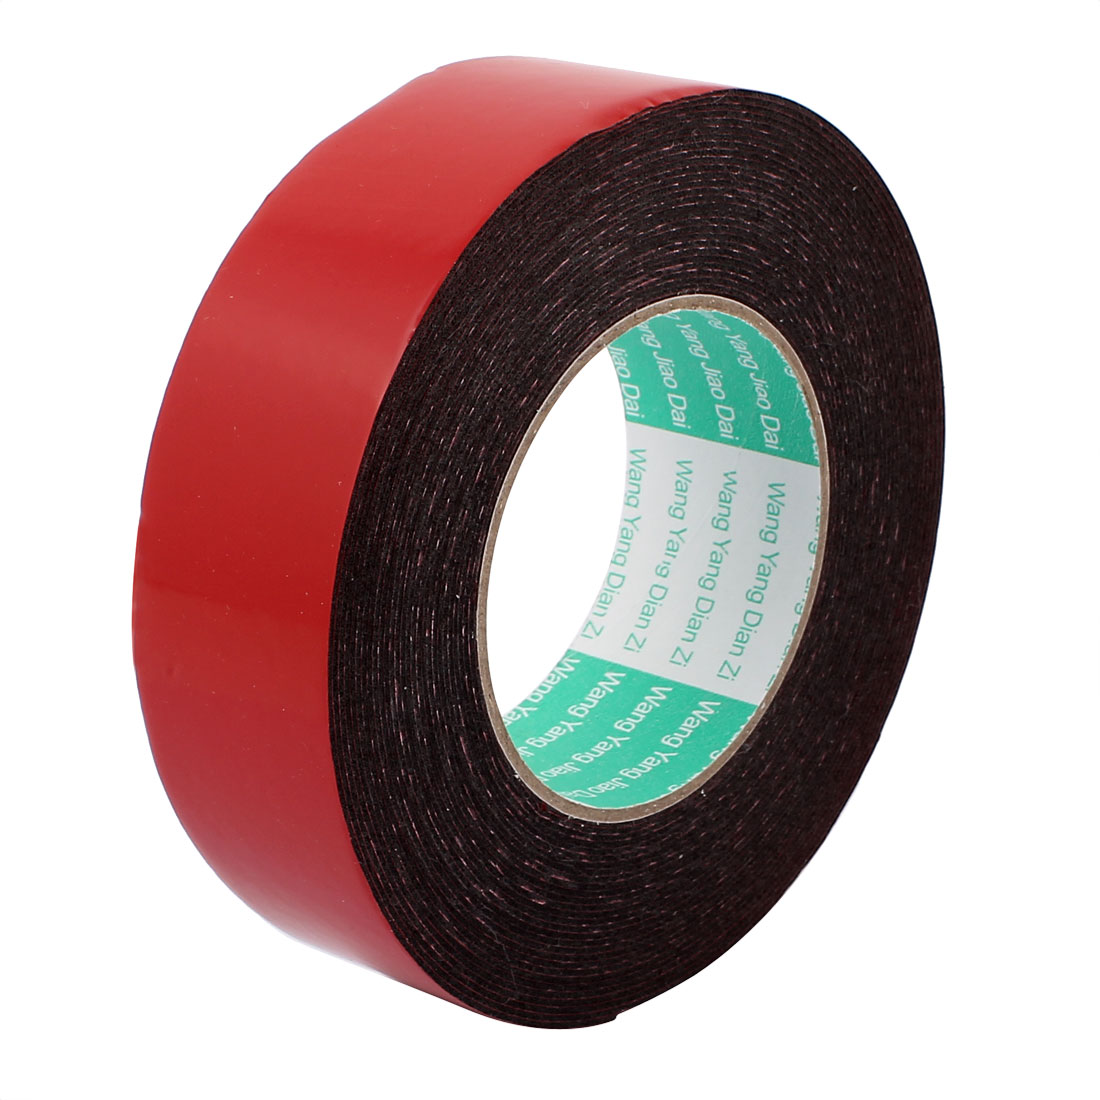 40mm x 1mm Double Sided Self Adhesive Shockproof Sponge Foam Tape 10M Length